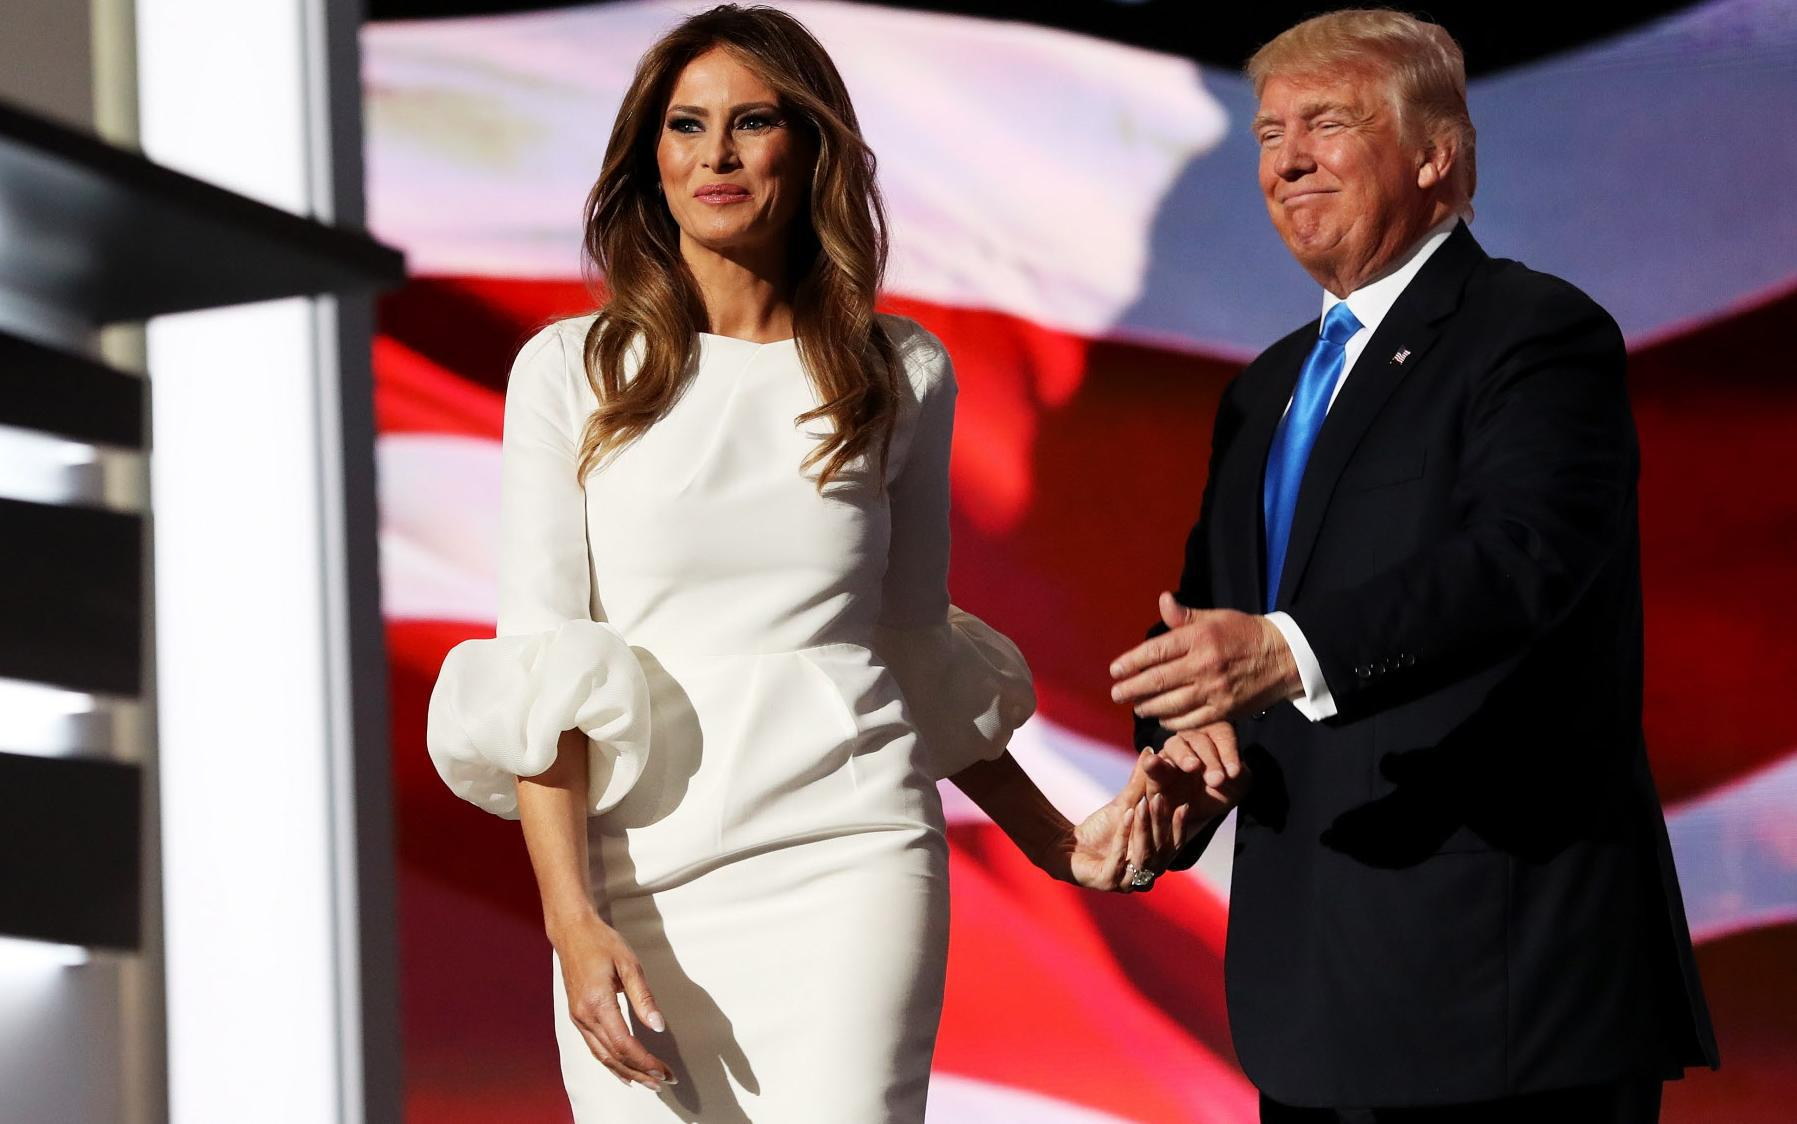 https://inforrm.files.wordpress.com/2016/09/melania-and-donald-trump.jpg